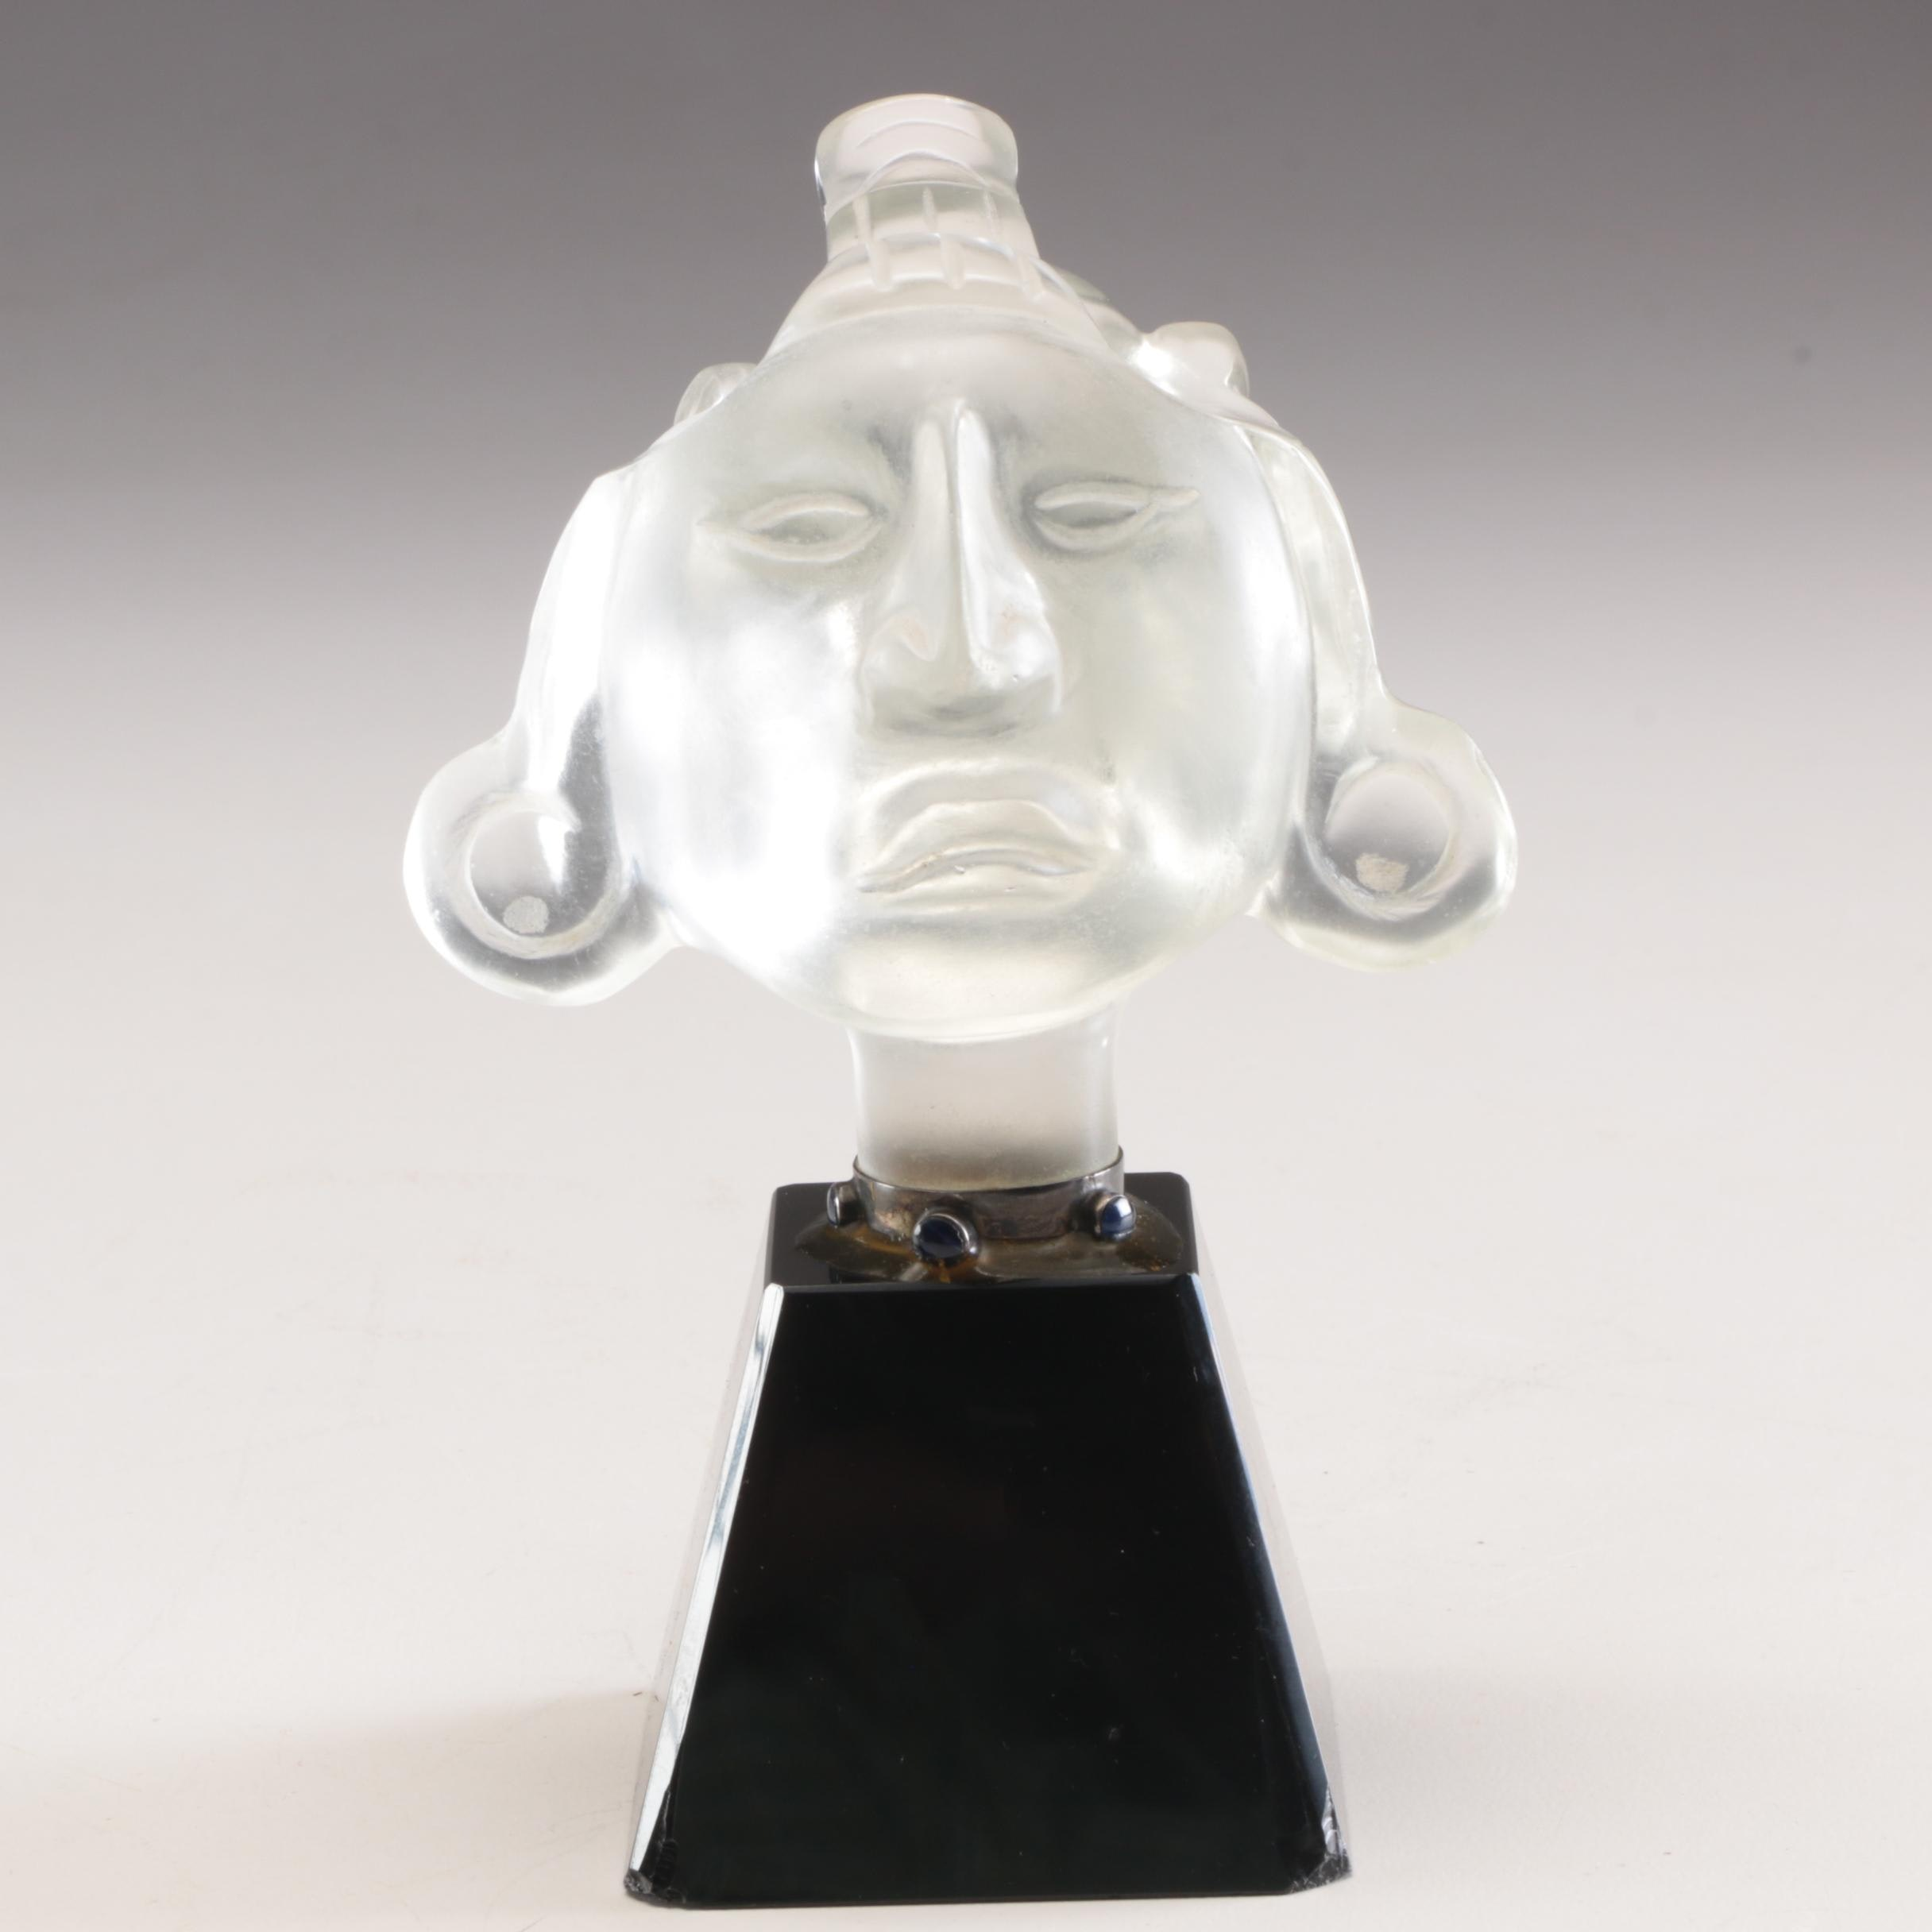 South American  Inspired Glass Figurine with Sodalite Accents